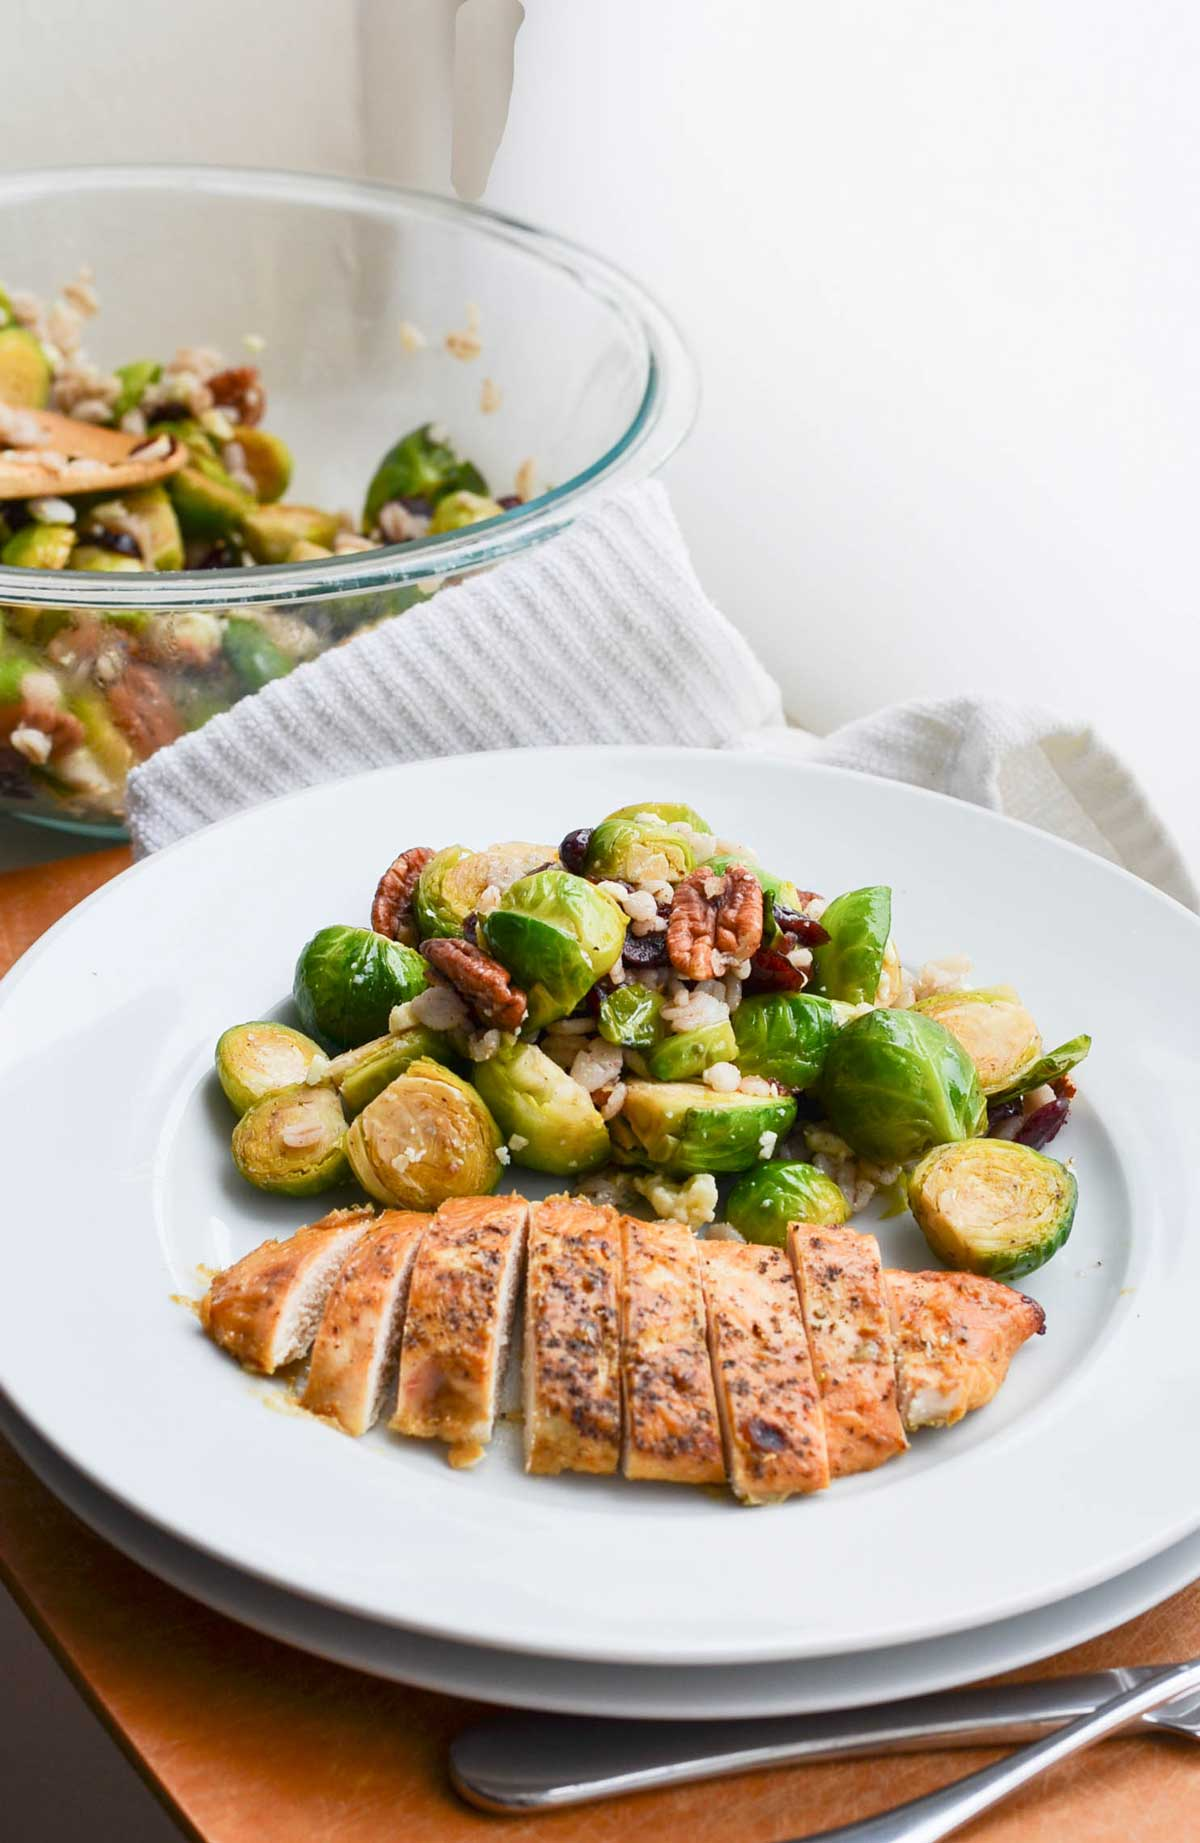 World's Best Chicken with Brussels Sprouts